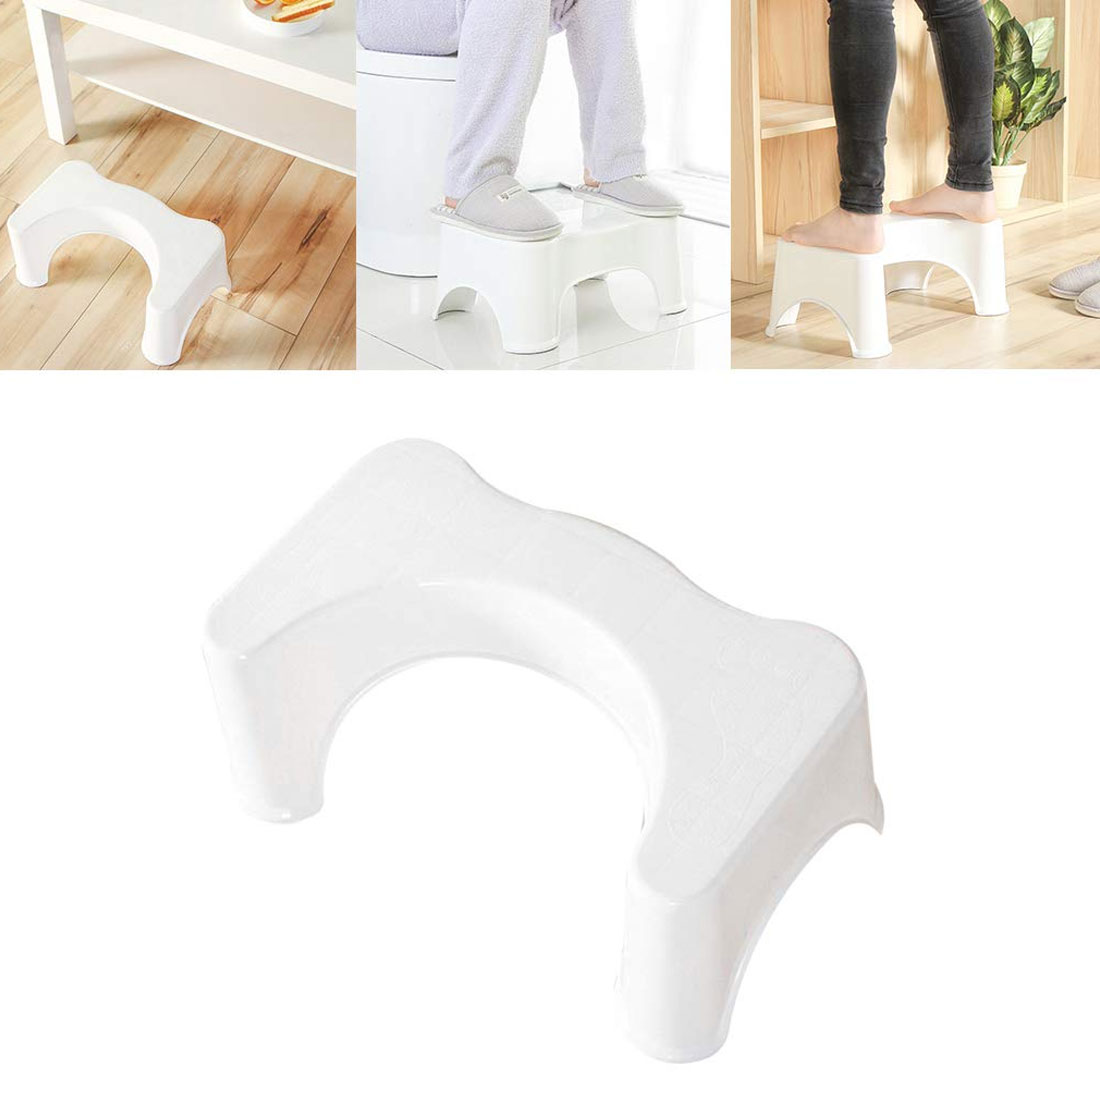 Bathroom Set U-Shaped Toilet Stool Bathroom Non-Slip Stool Helper Assistant Foot Seat Squatting Children Pregnant Footstool